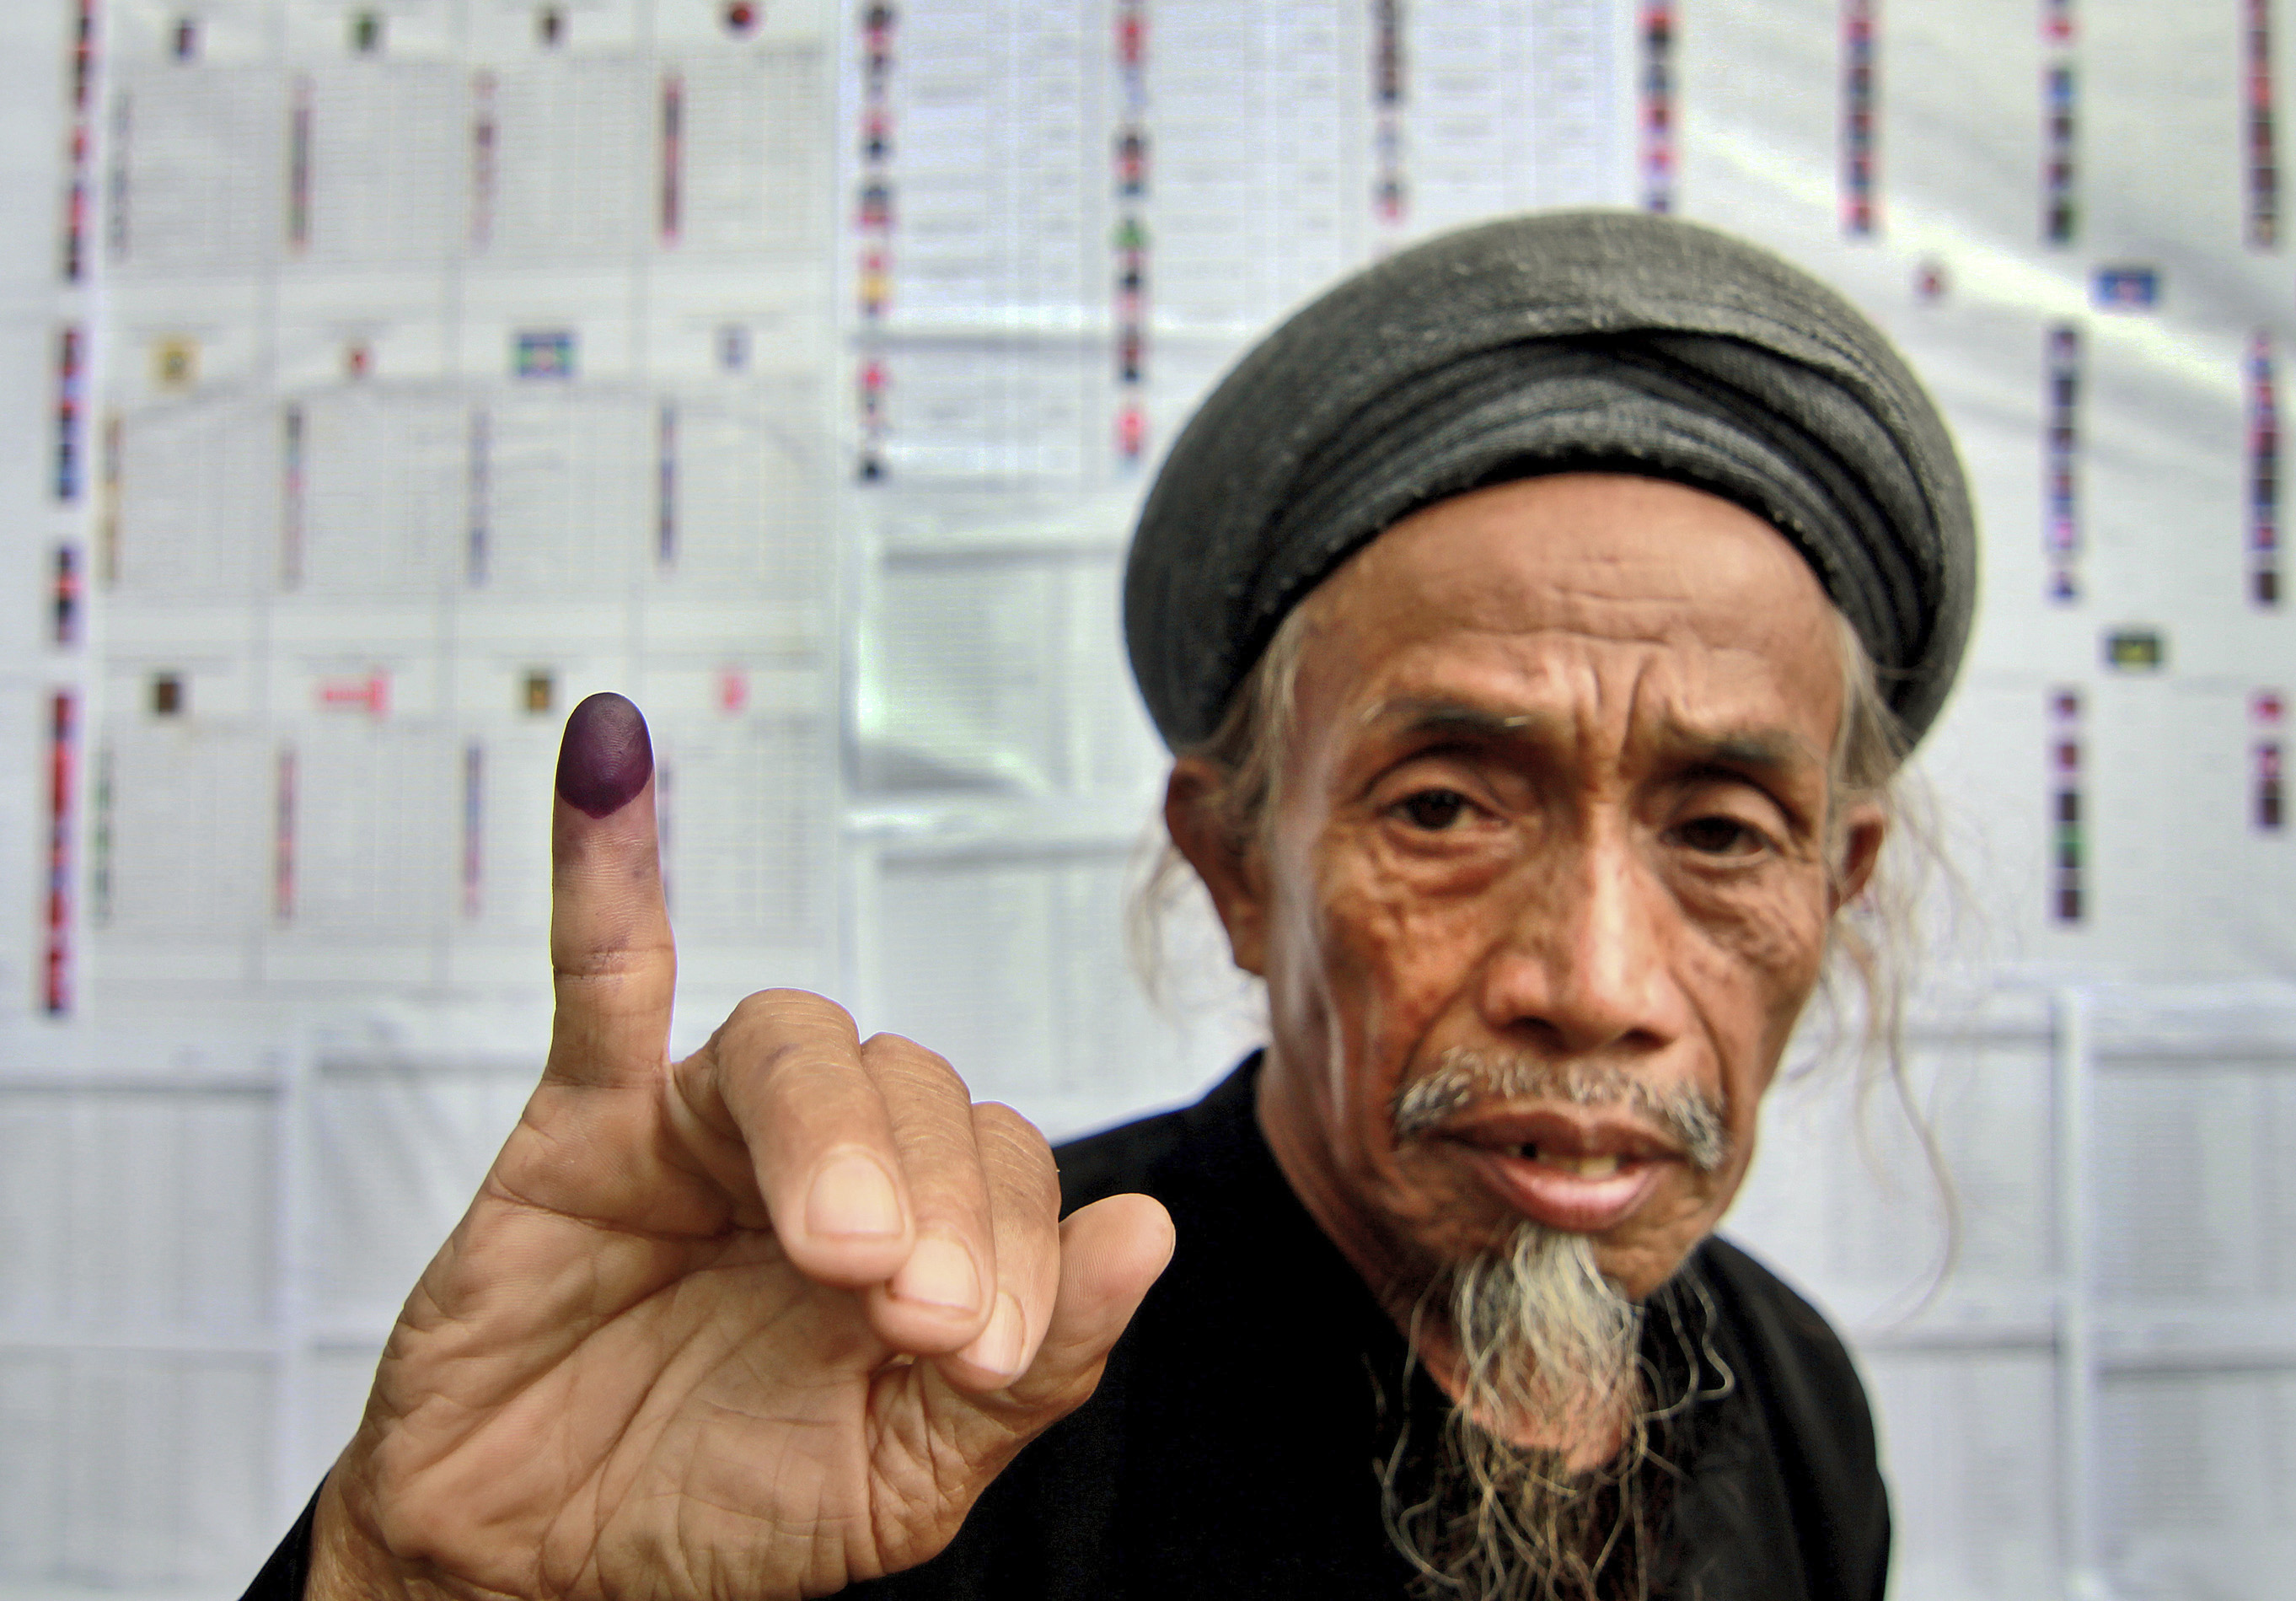 A member of the An-Nadzir Muslim sect shows his inked finger after casting his ballot at a polling station during the Indonesian parliamentary elections in Gowa, South Sulawesi province, on April 9, 2014